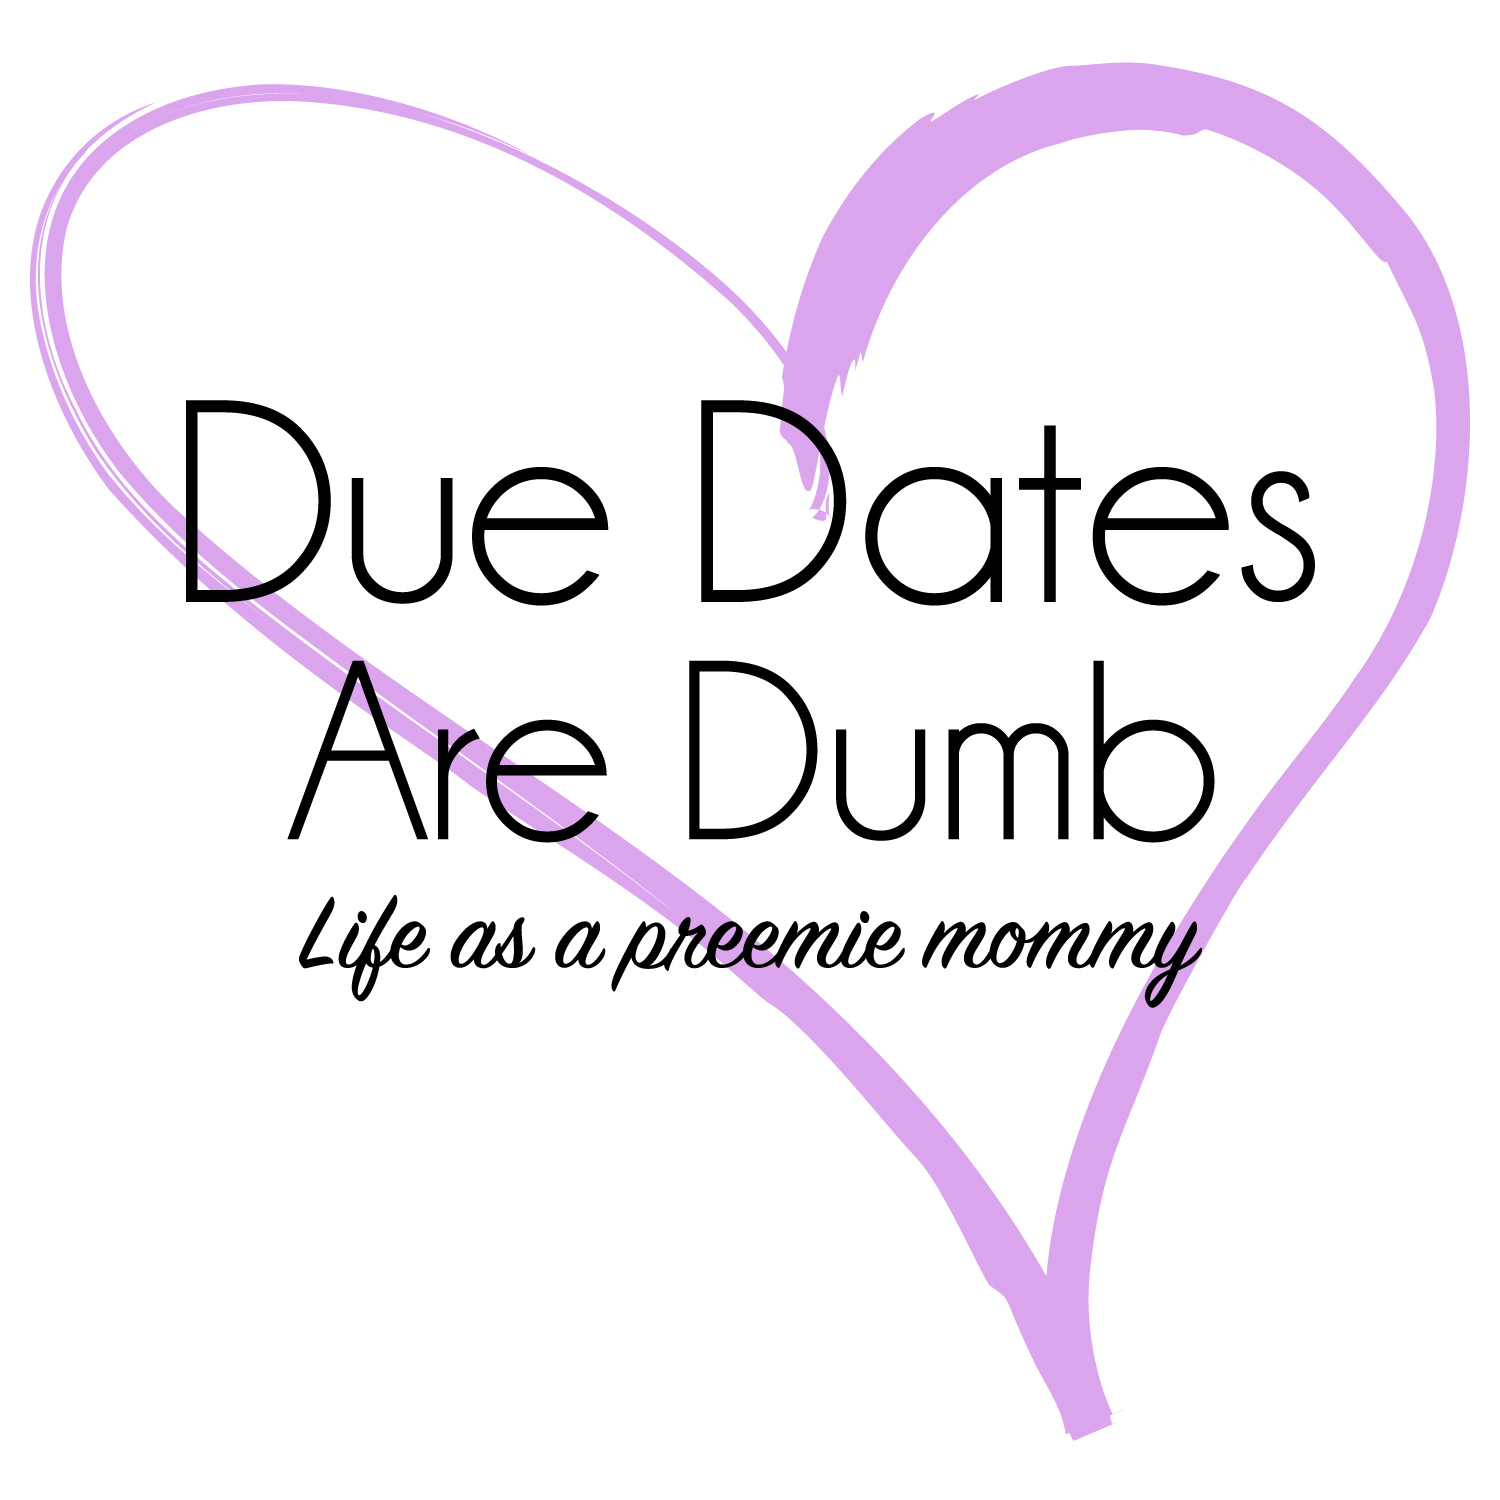 Due Dates Are Dumb